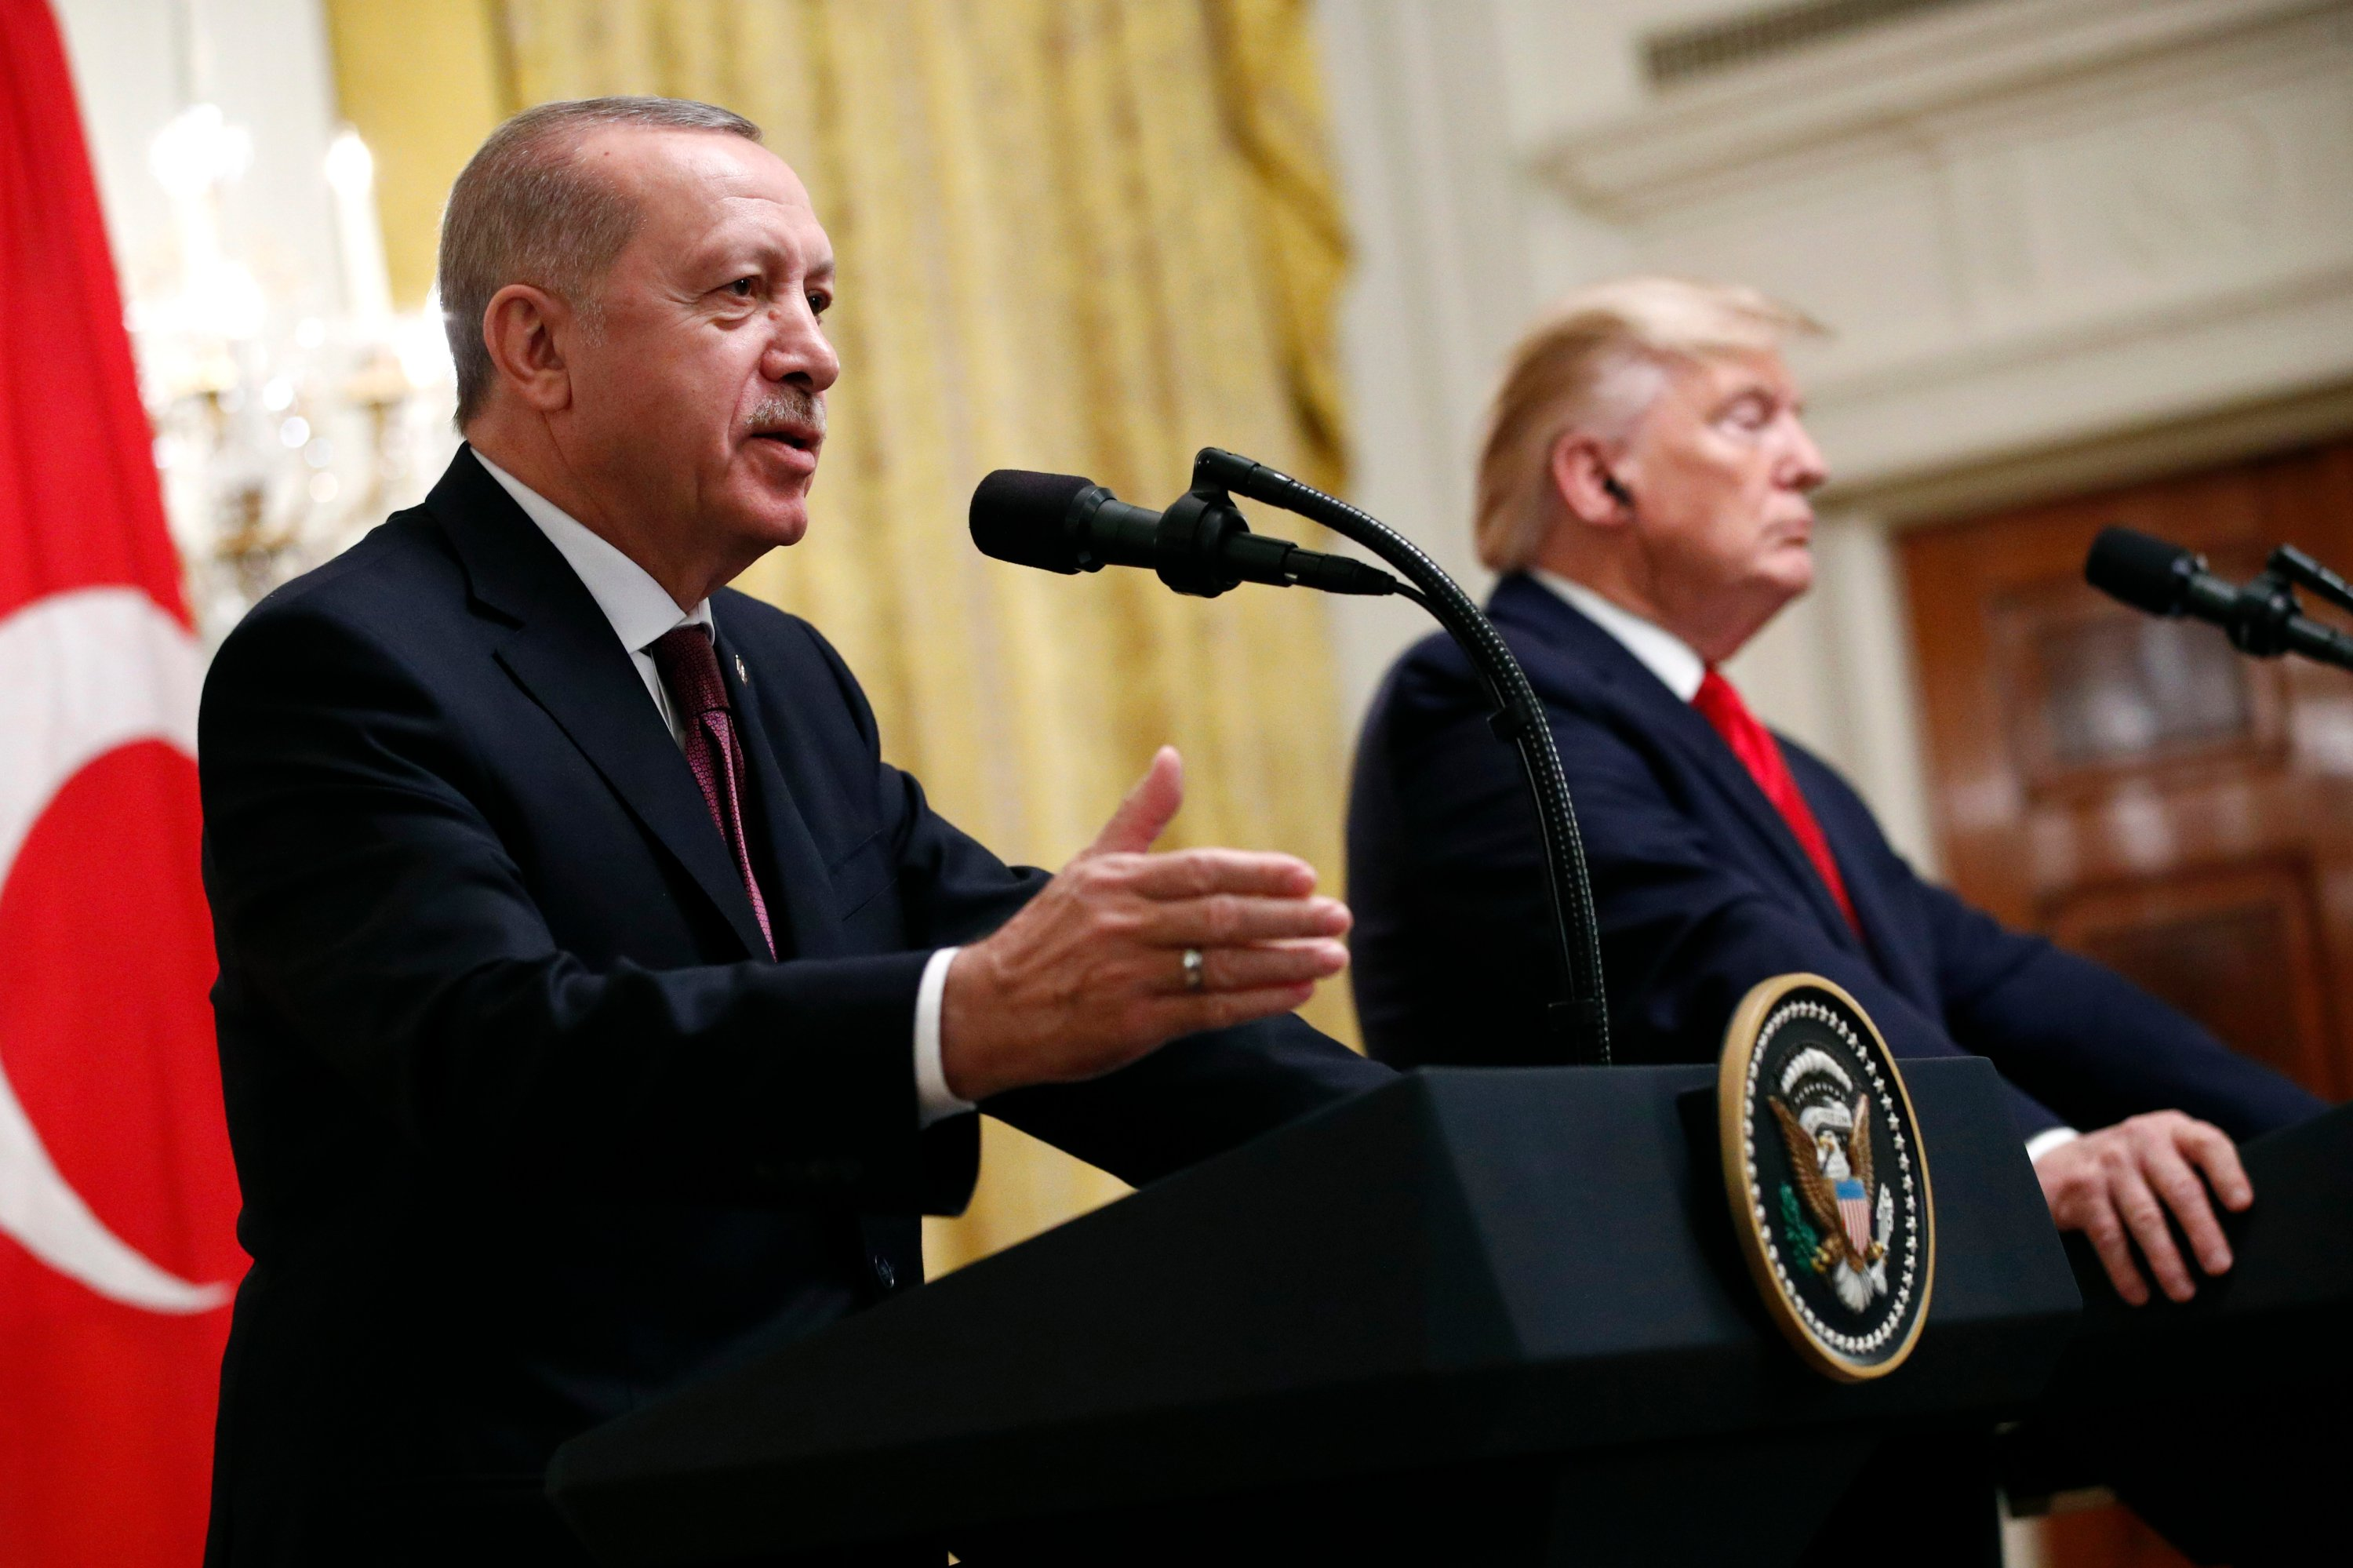 Erdoğan, Trump discuss Libya, US protests in phone call | Daily Sabah